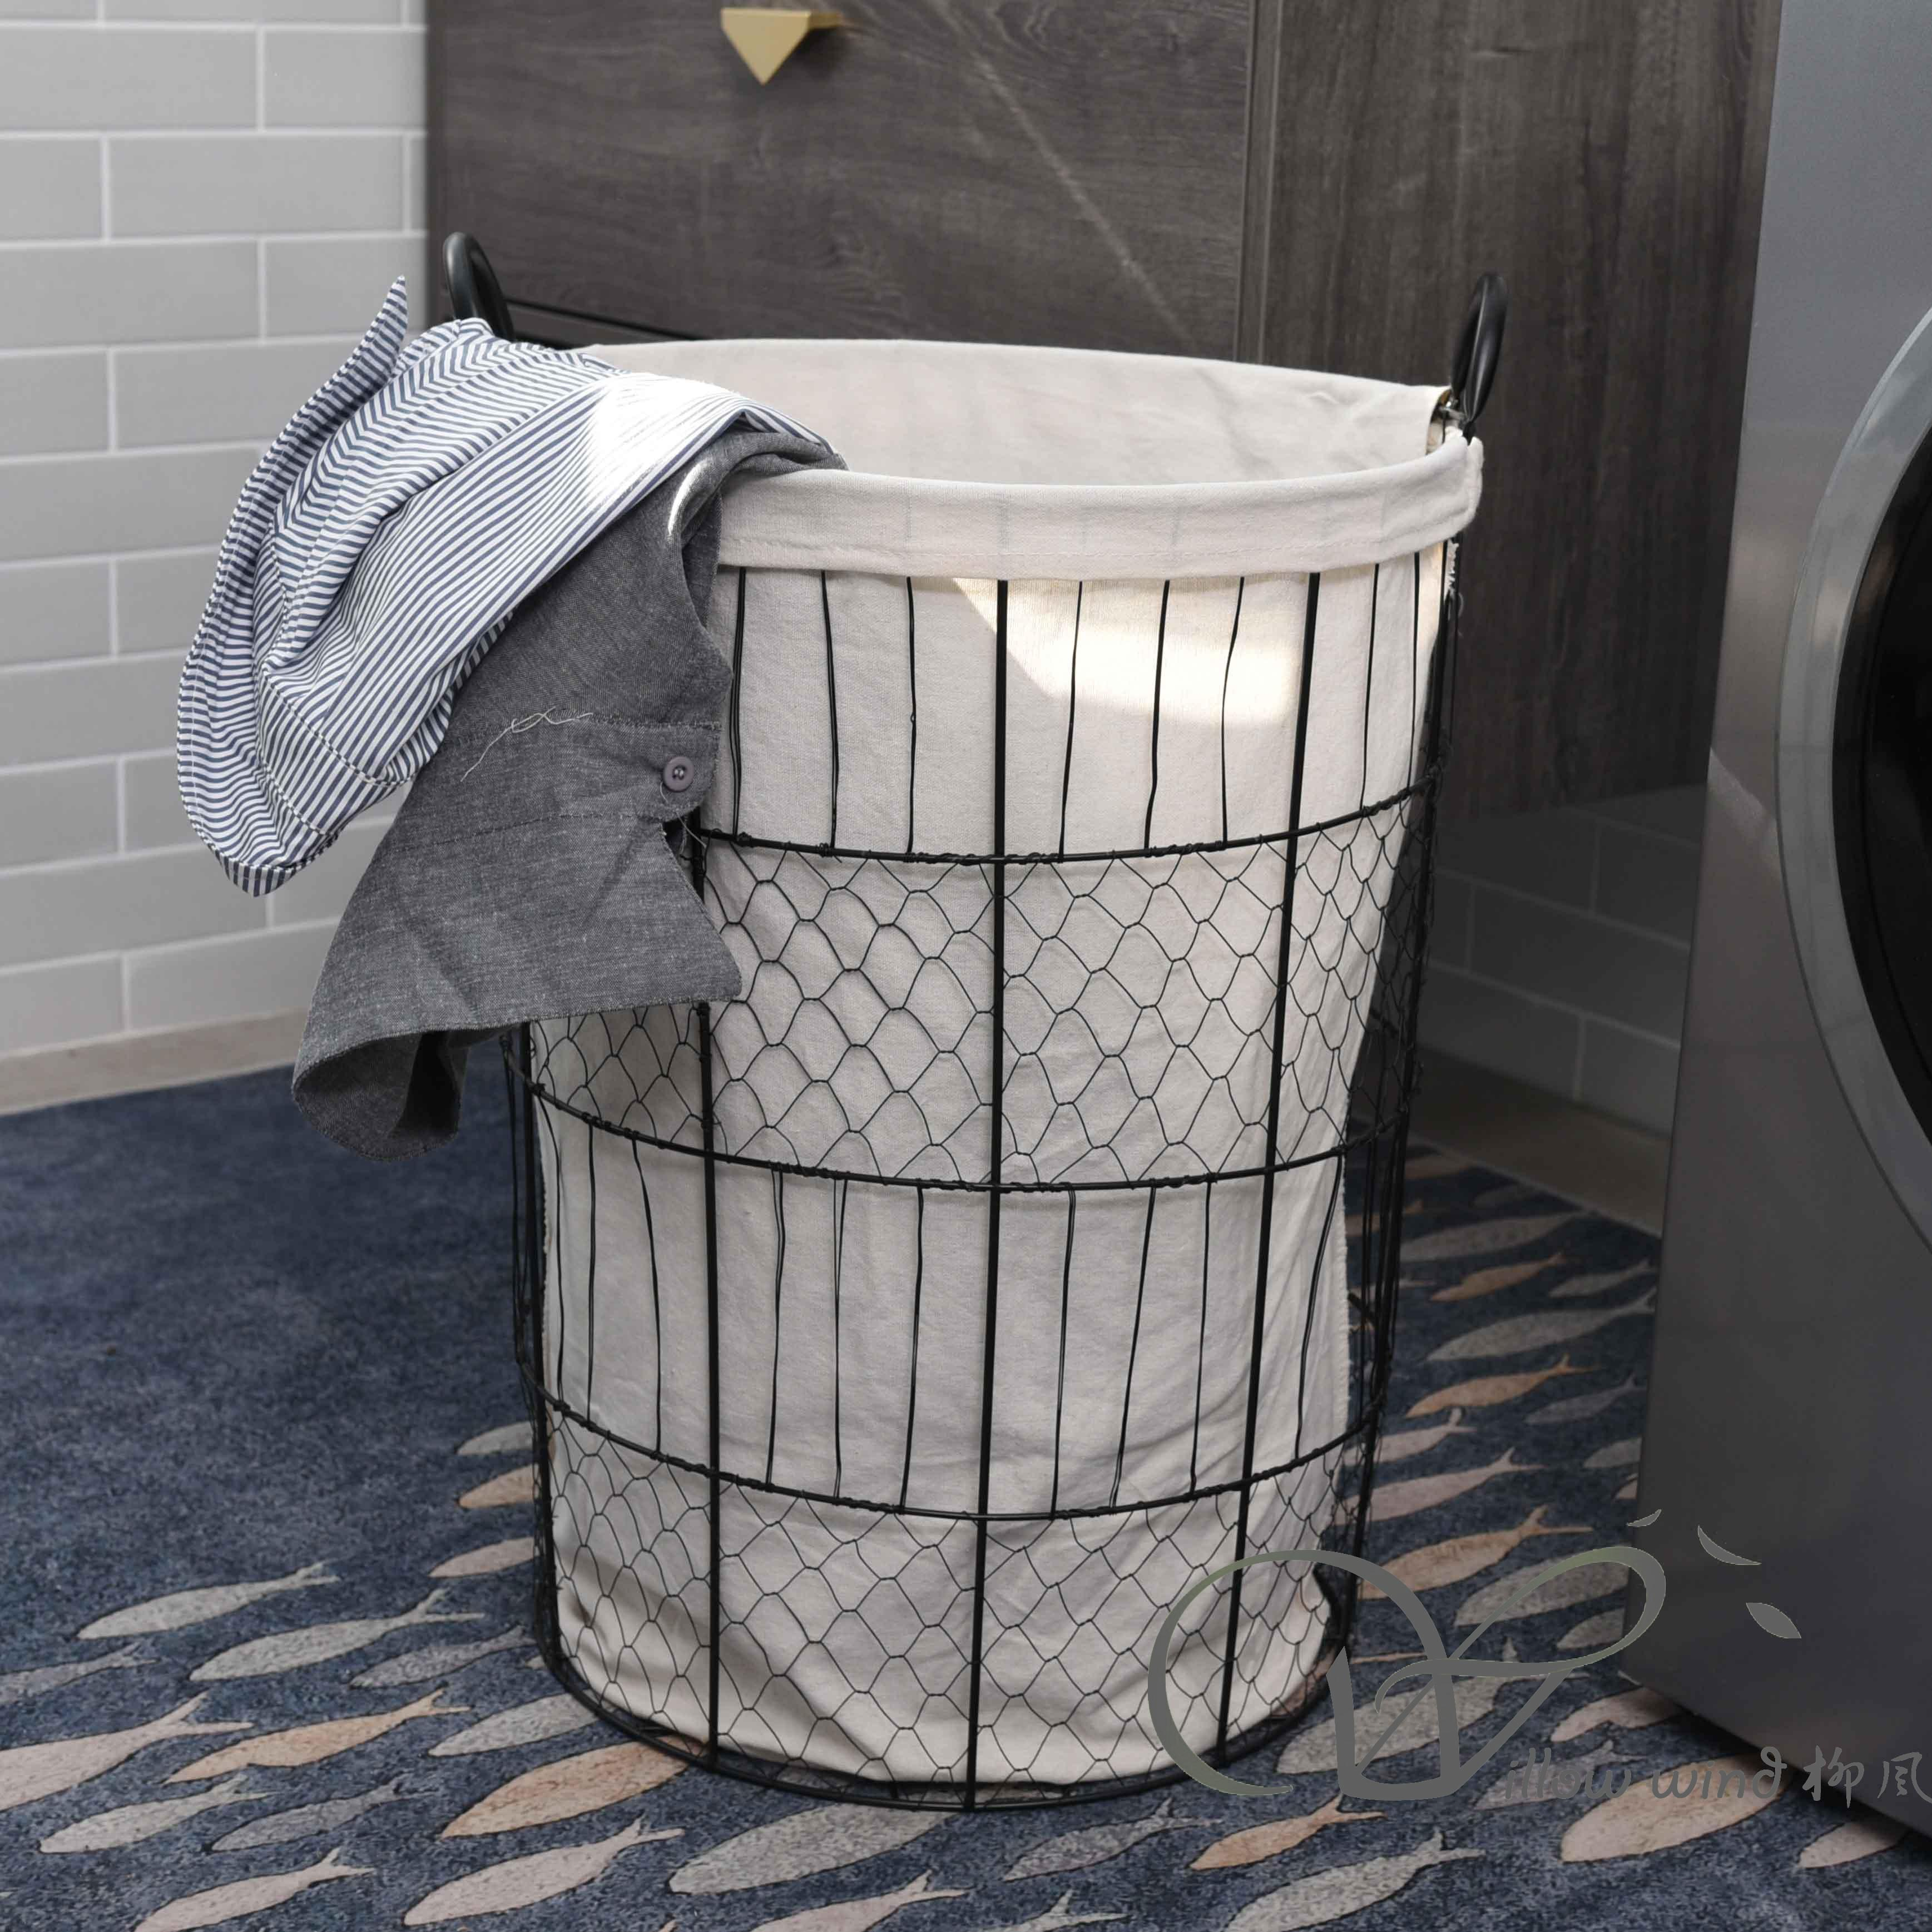 Black Round Wire storage basket Laundry Basket Metal Basket